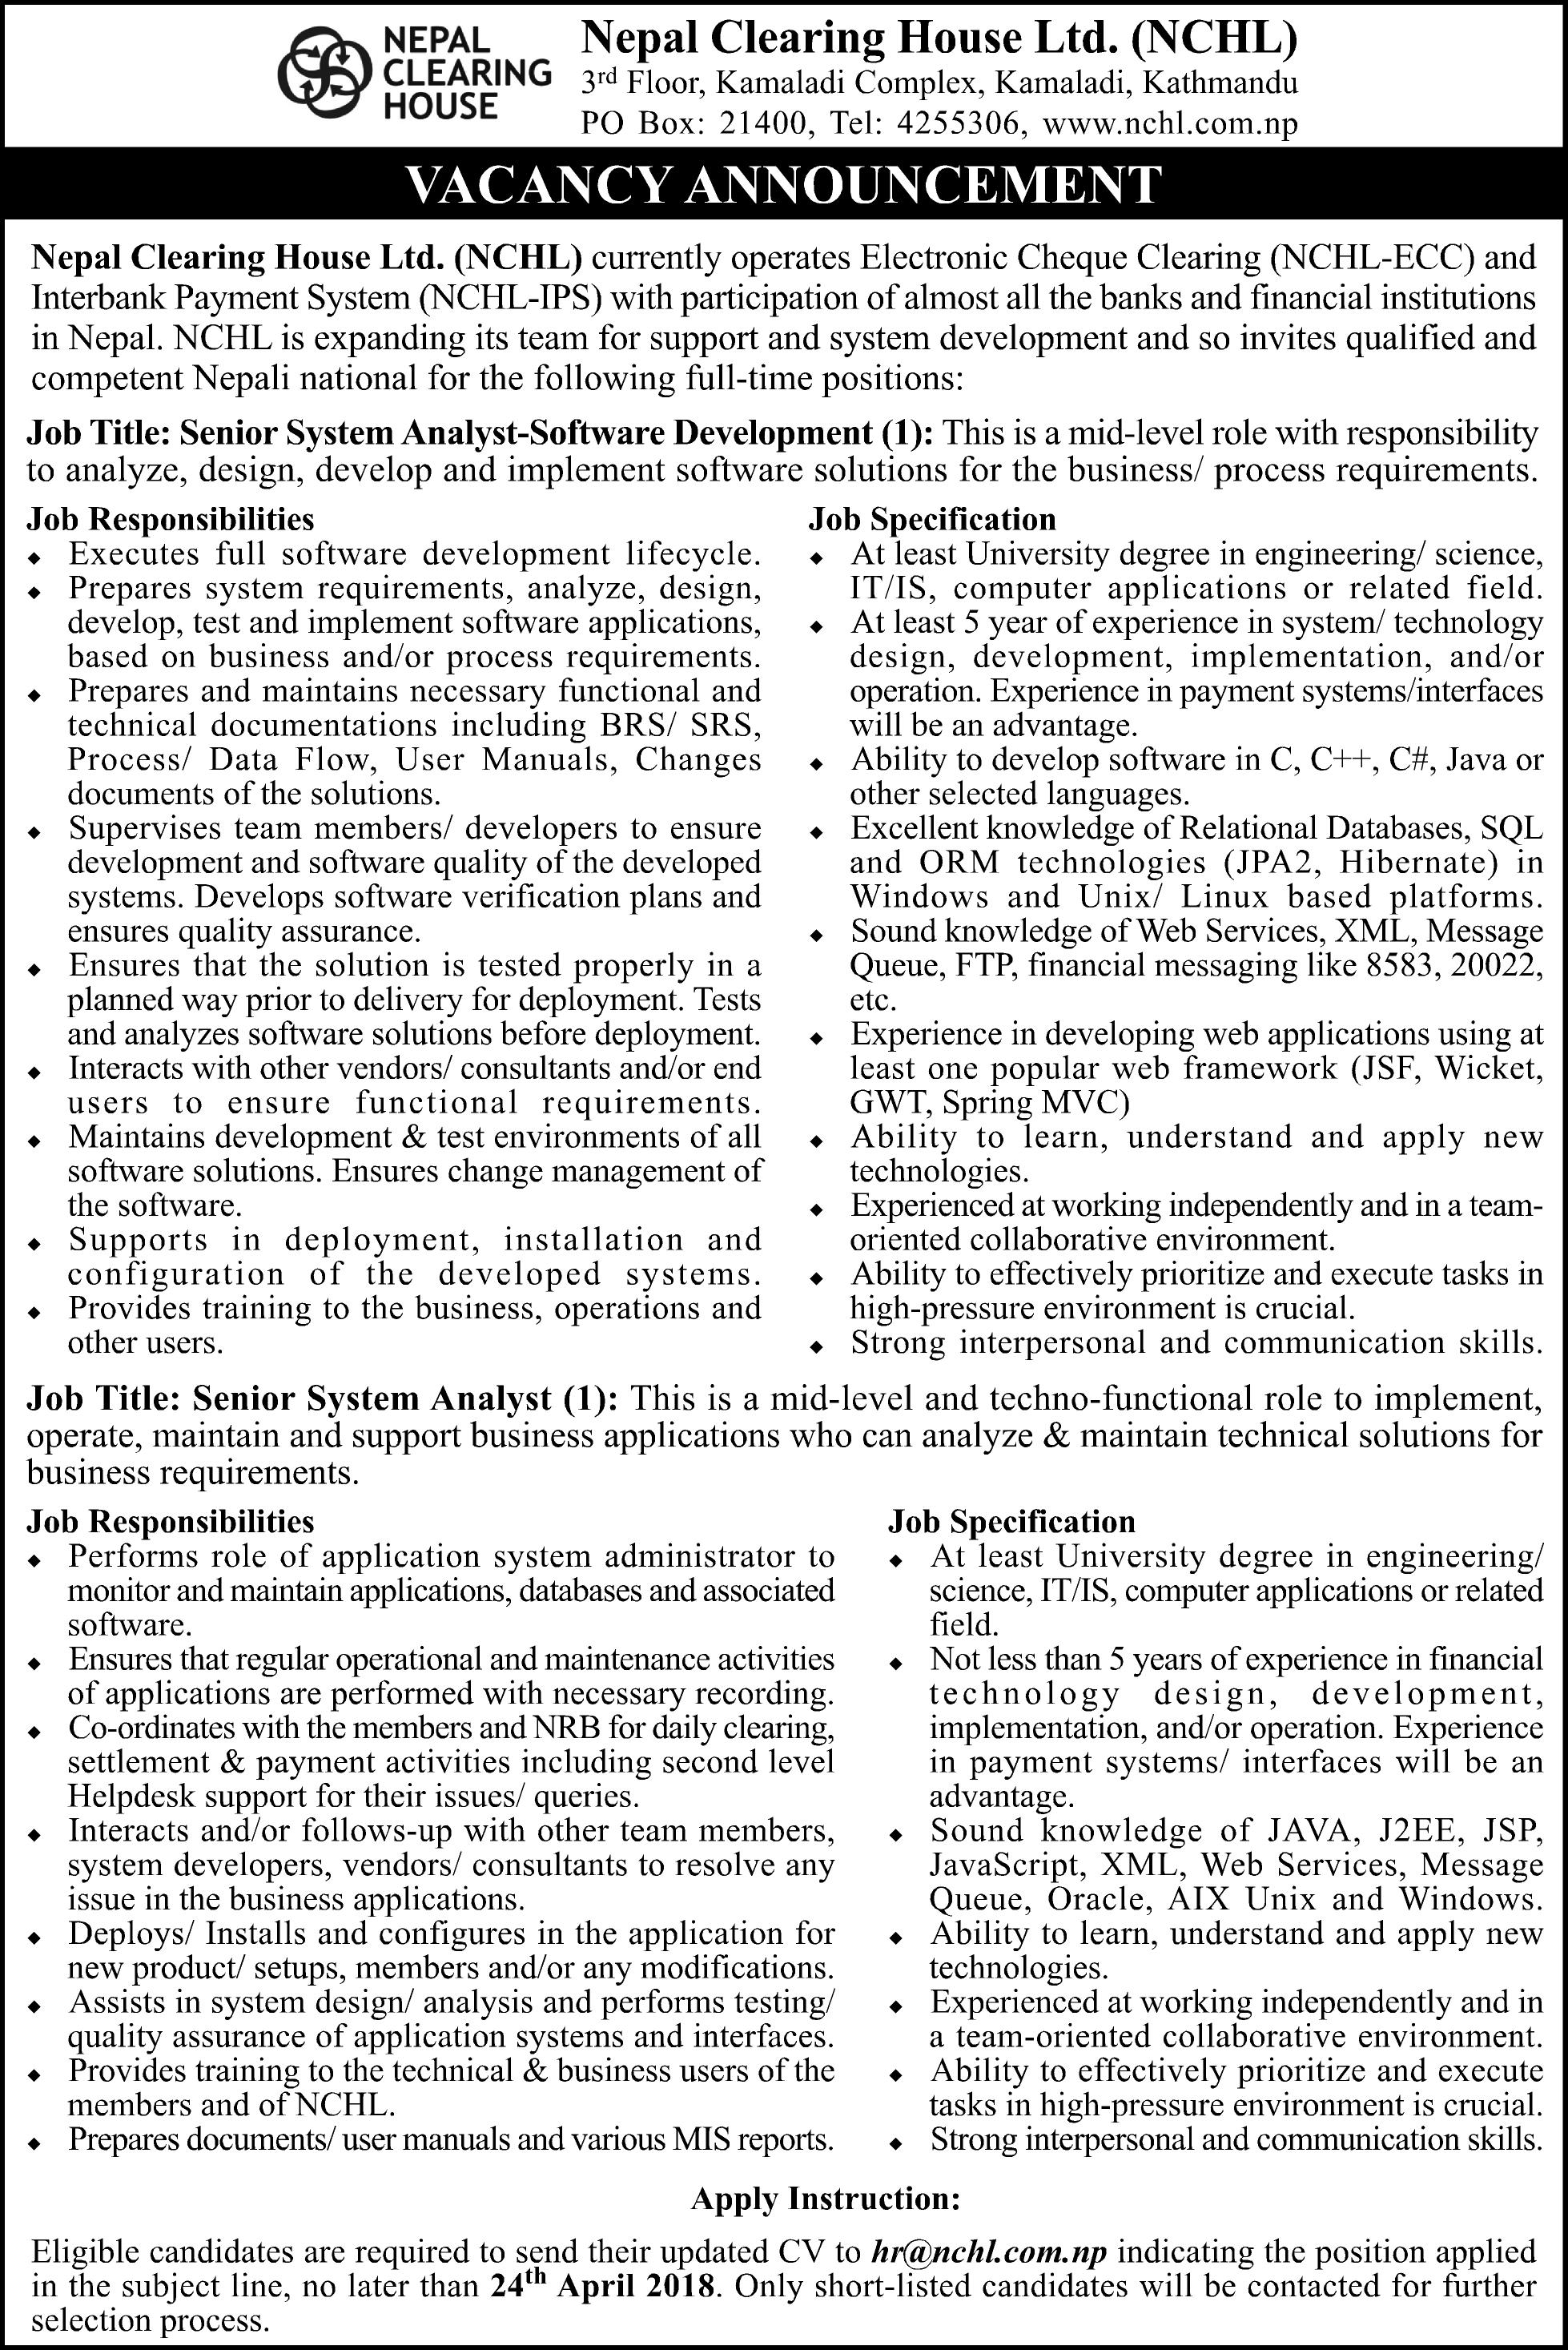 Vacancy Announcement (04/04/2018)